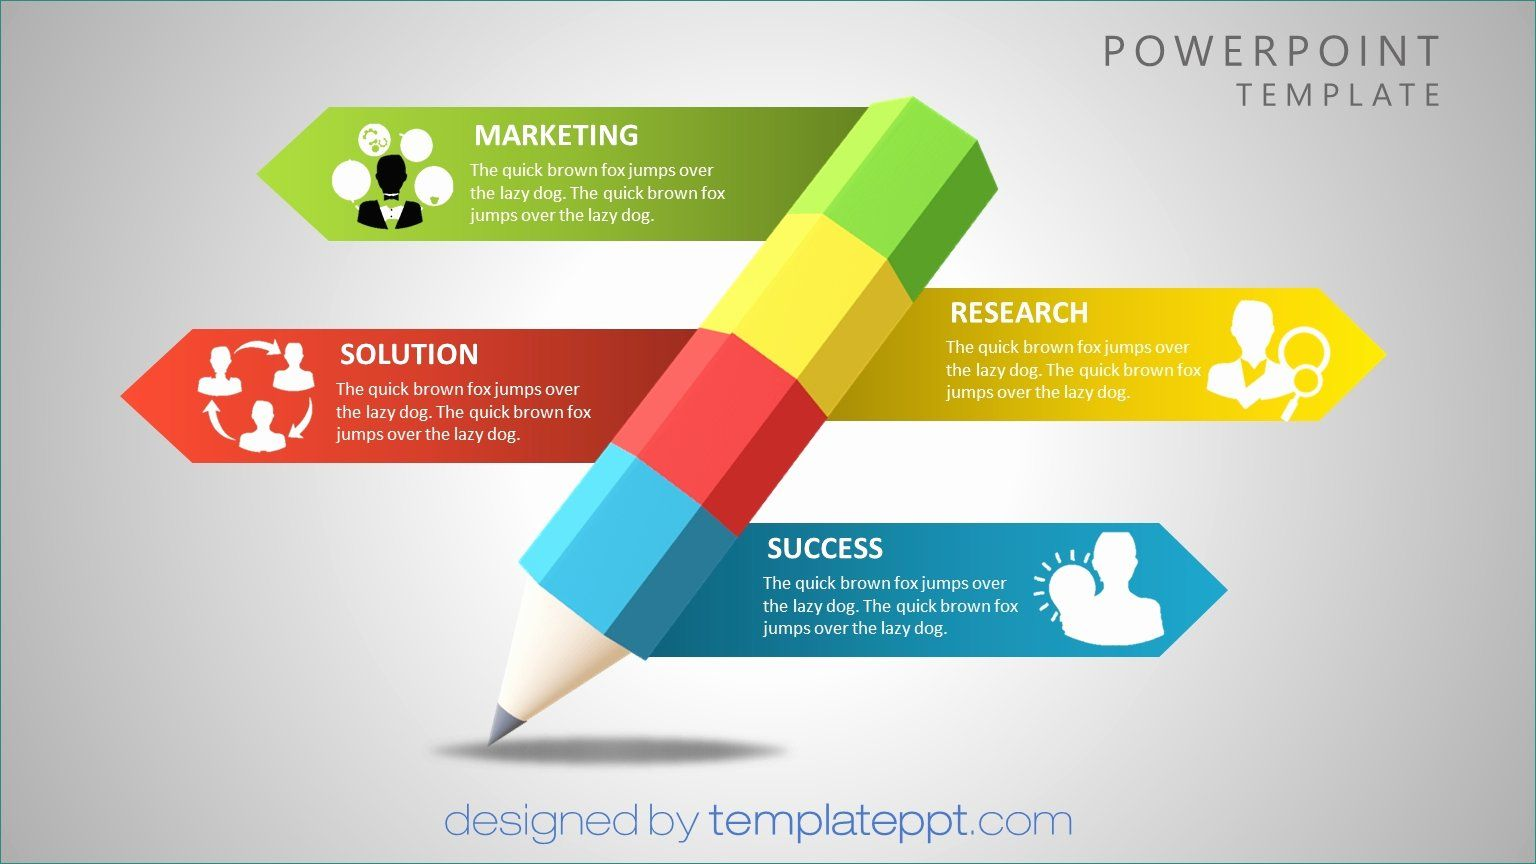 Best Ppt Templates Free Download 2018 Unusual Best